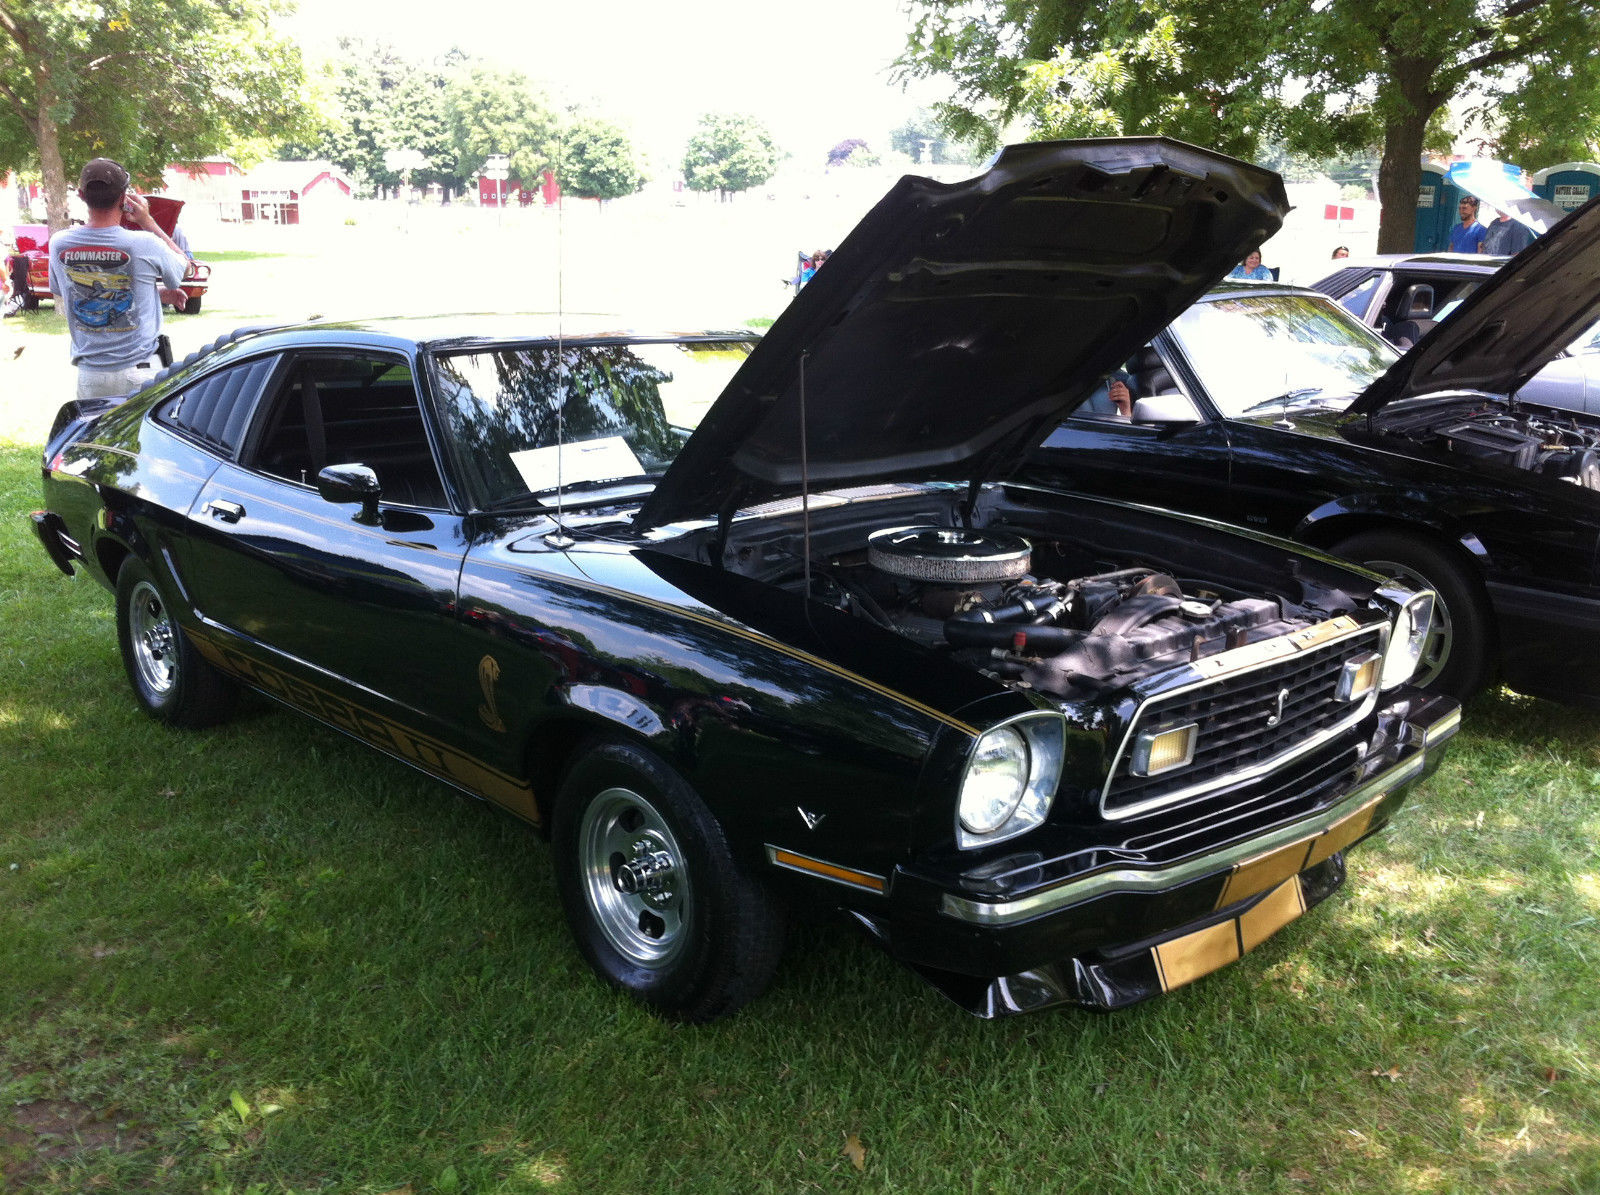 1976 ford mustang ii base hardtop 3 door 5 0l cobra black with gold stripes classic ford. Black Bedroom Furniture Sets. Home Design Ideas